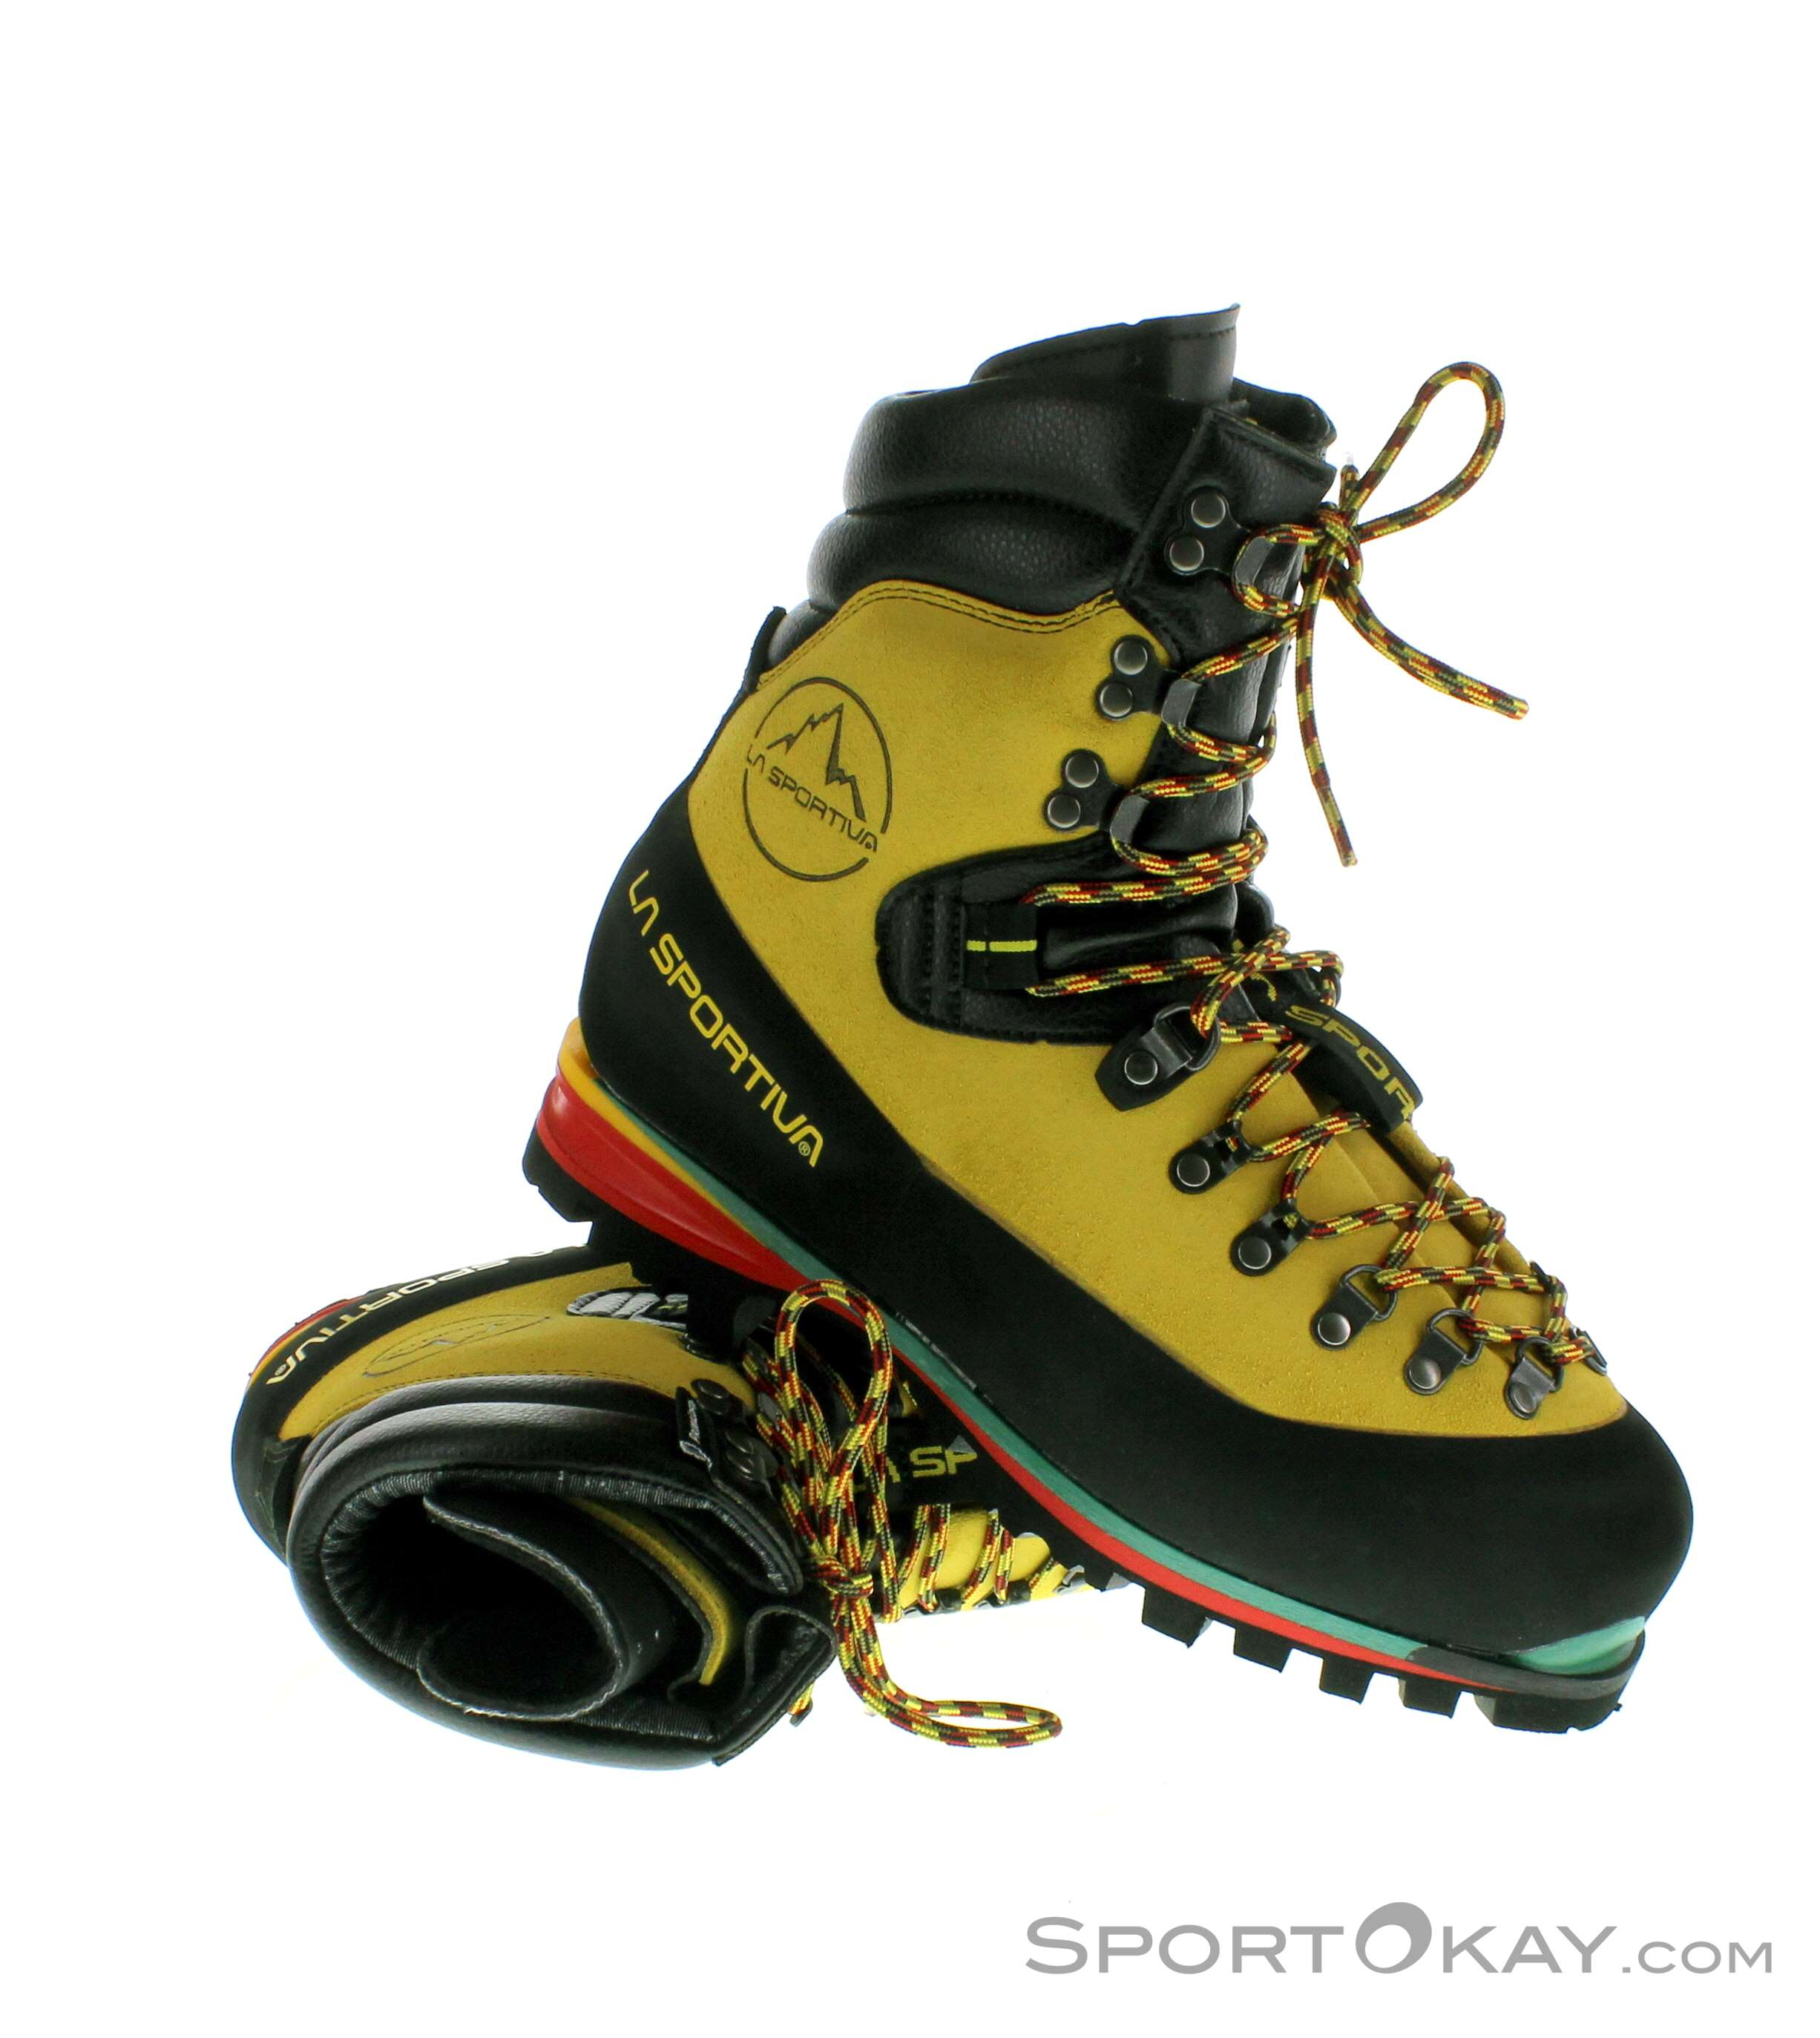 b3d2590665b7fa La Sportiva Nepal Extreme Mens Mountaineering Boots - Mountaineering ...